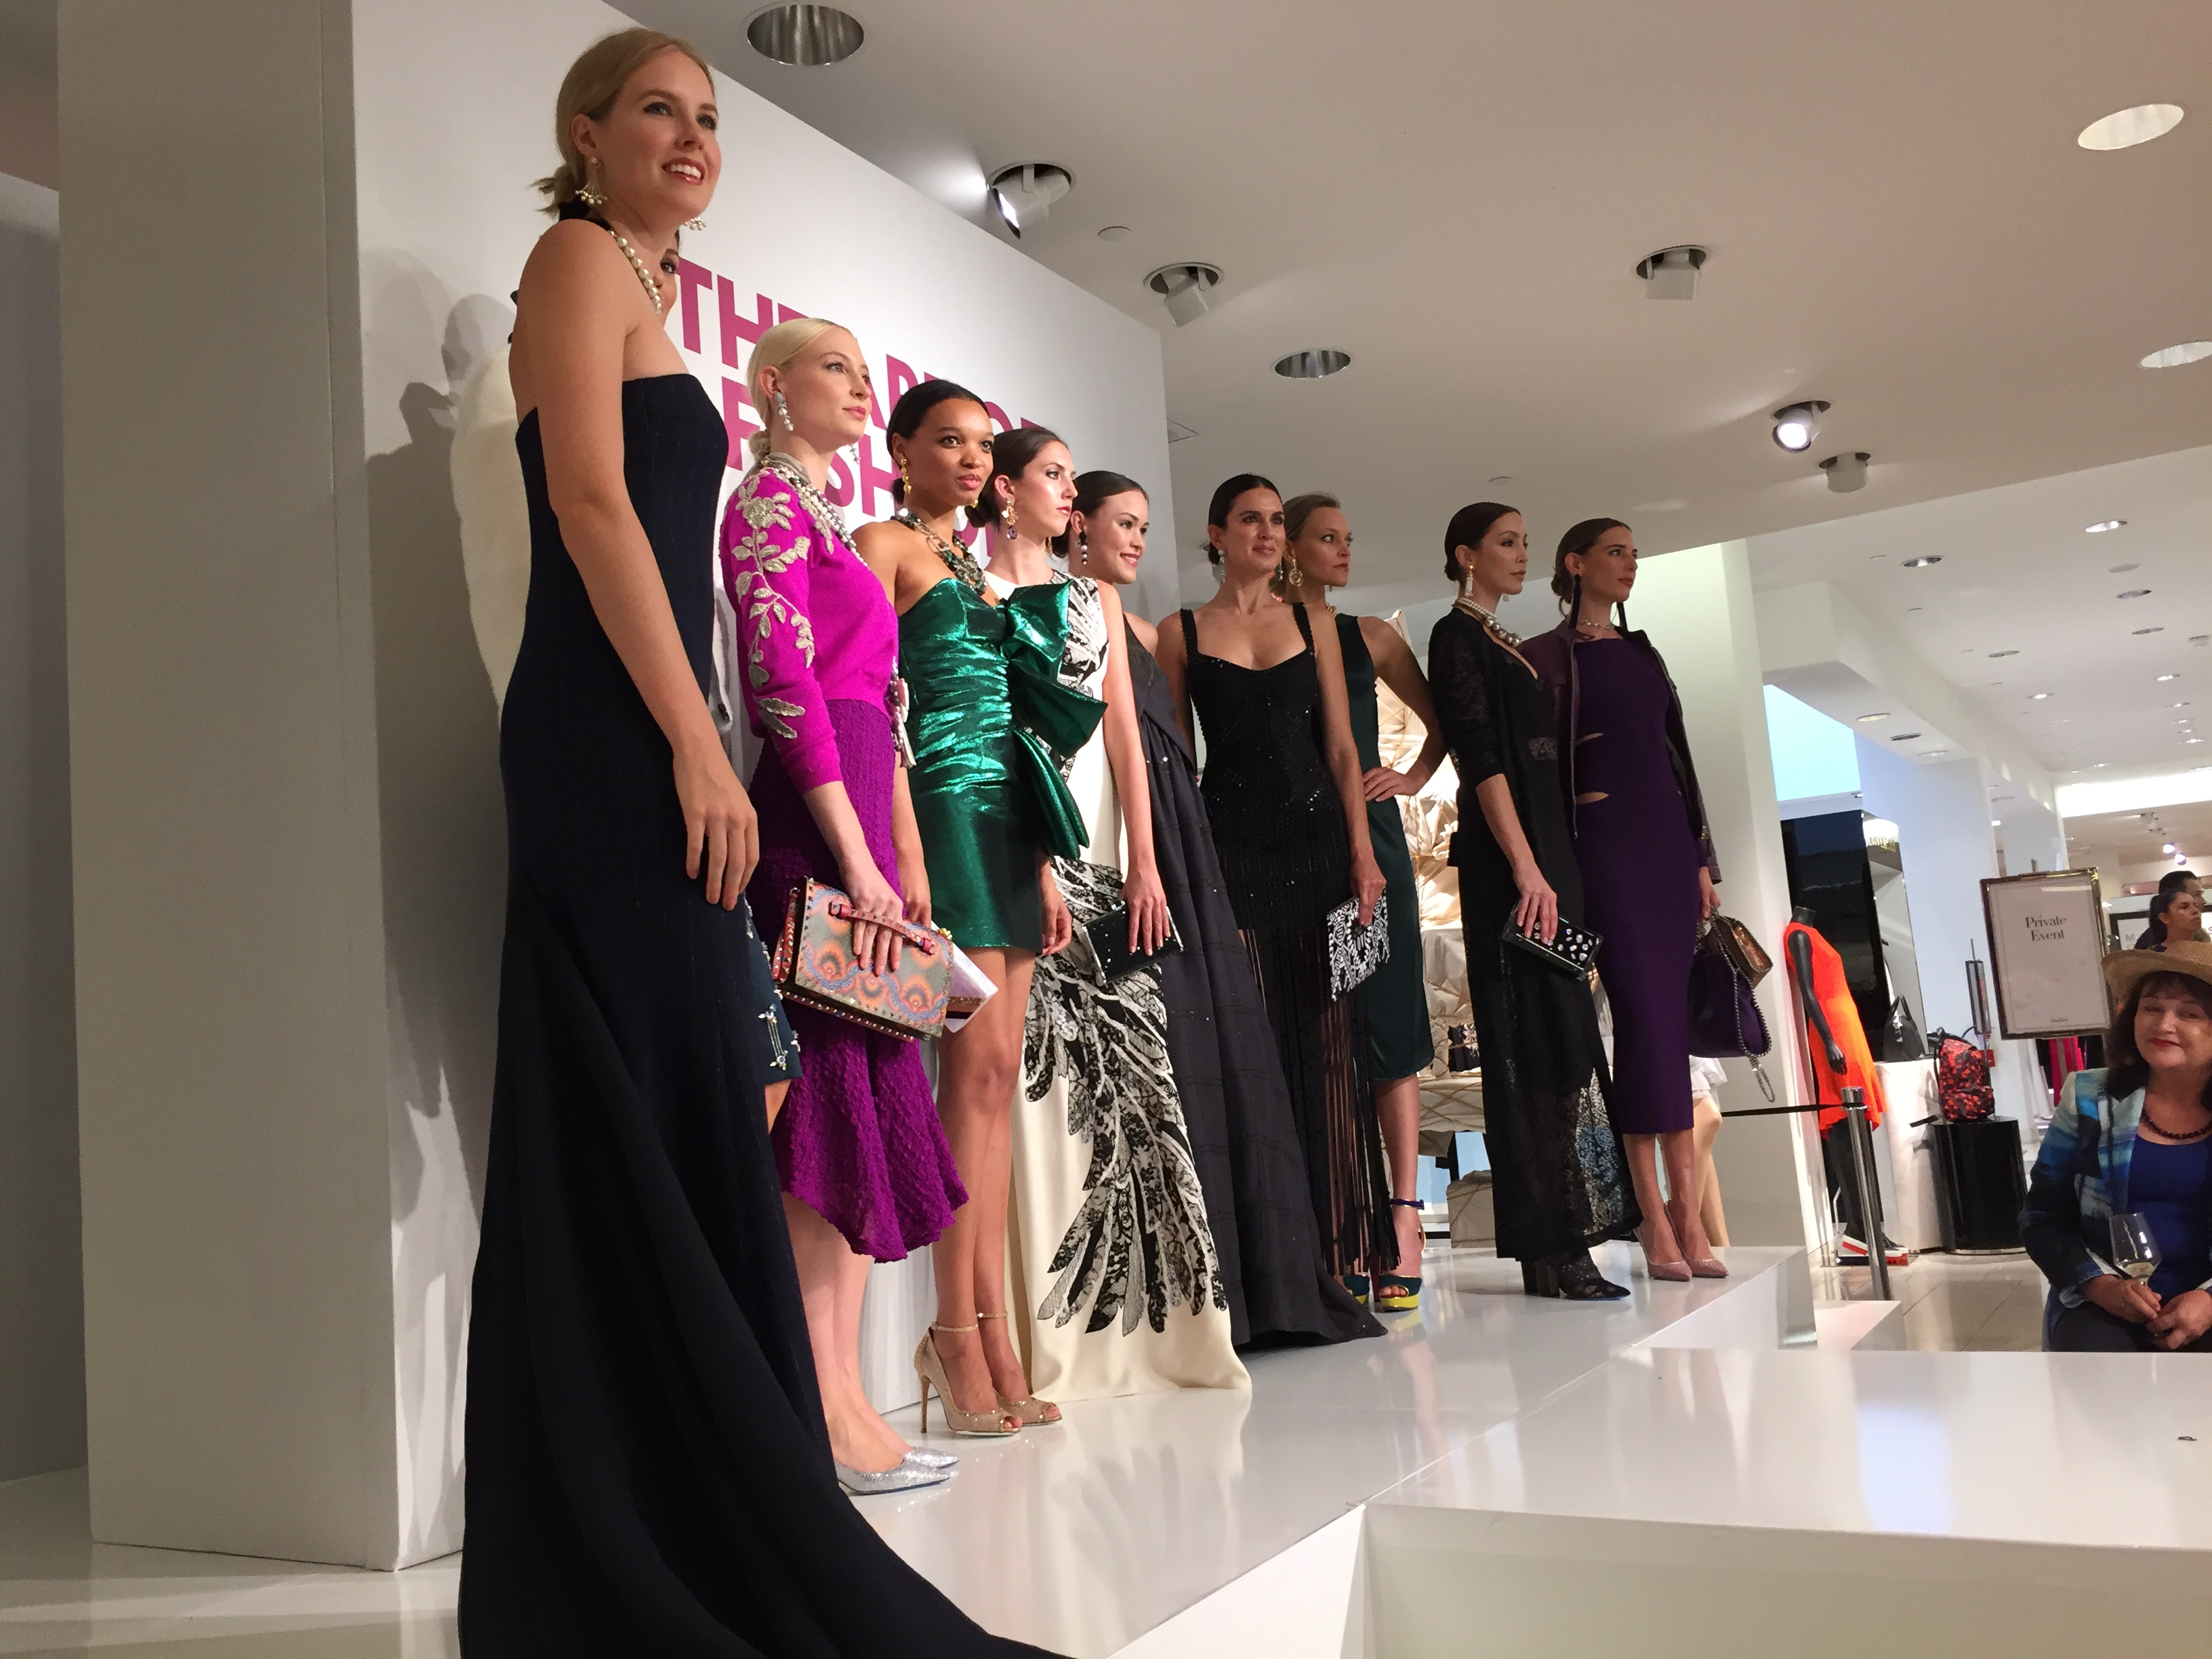 The Art of Fashion Runway Show Neiman Marcus, Newport Beach CA